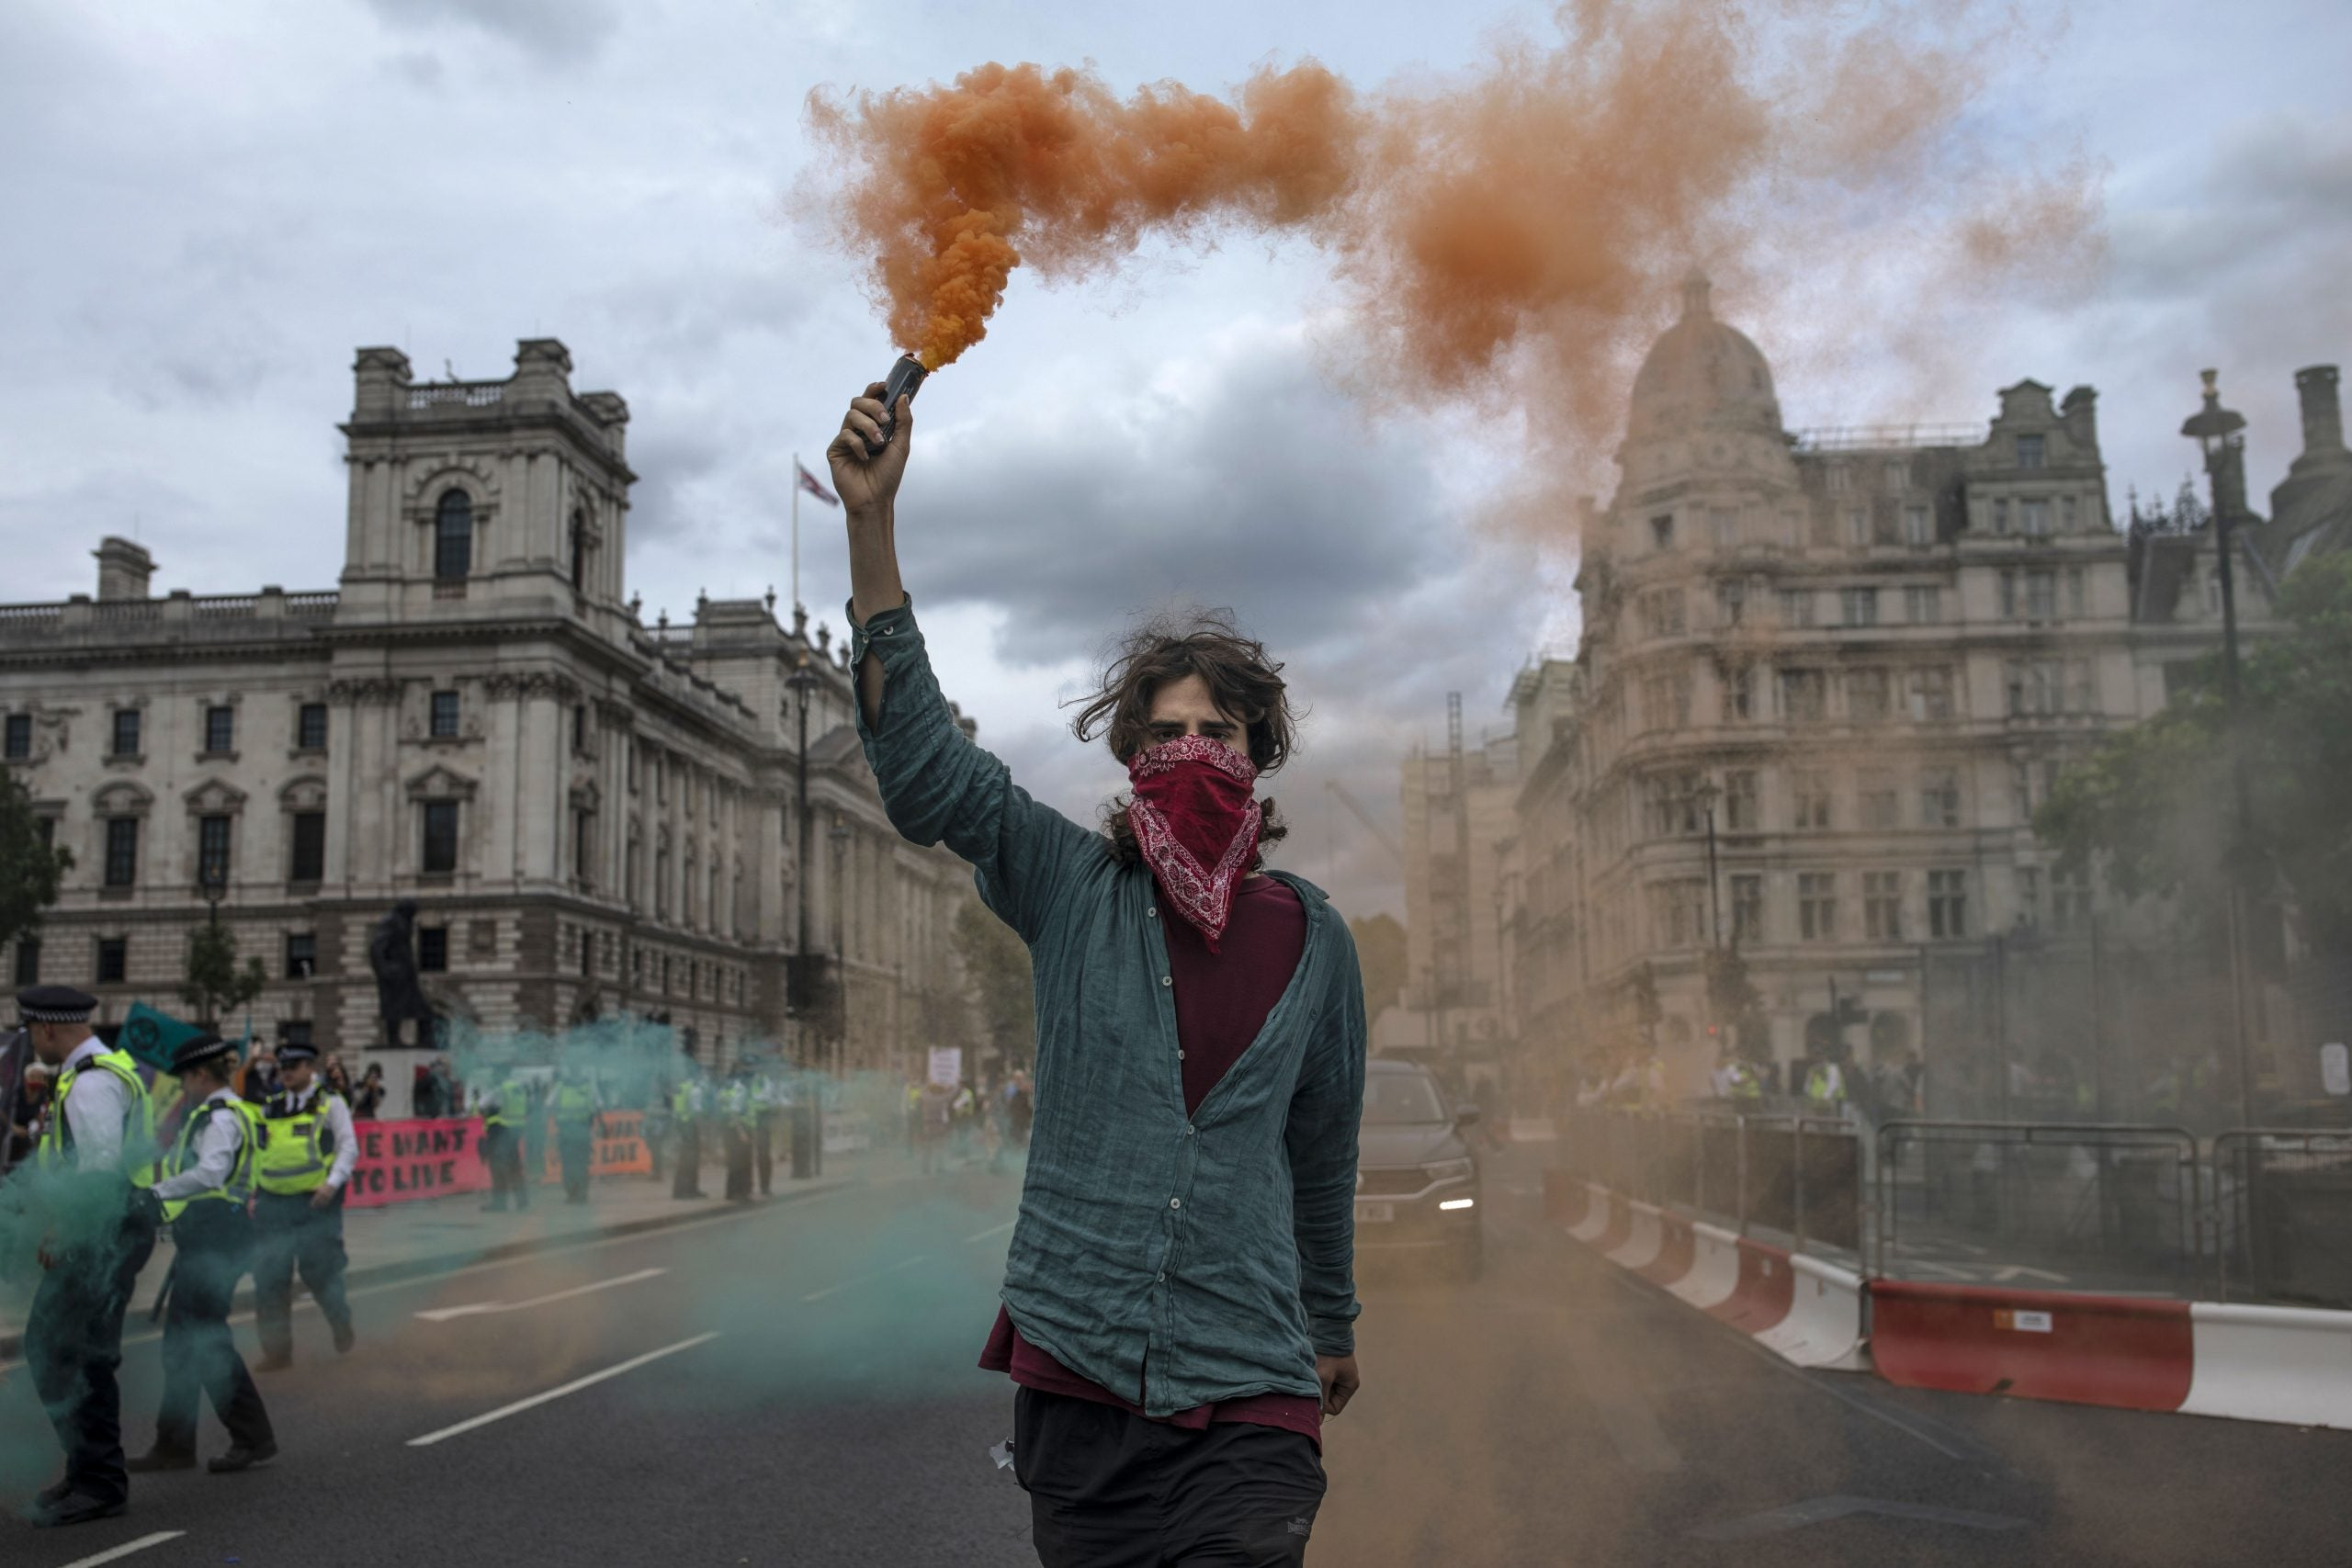 I'm a middle-class millennial and intermittent vegan, yet I find Extinction Rebellion insufferable